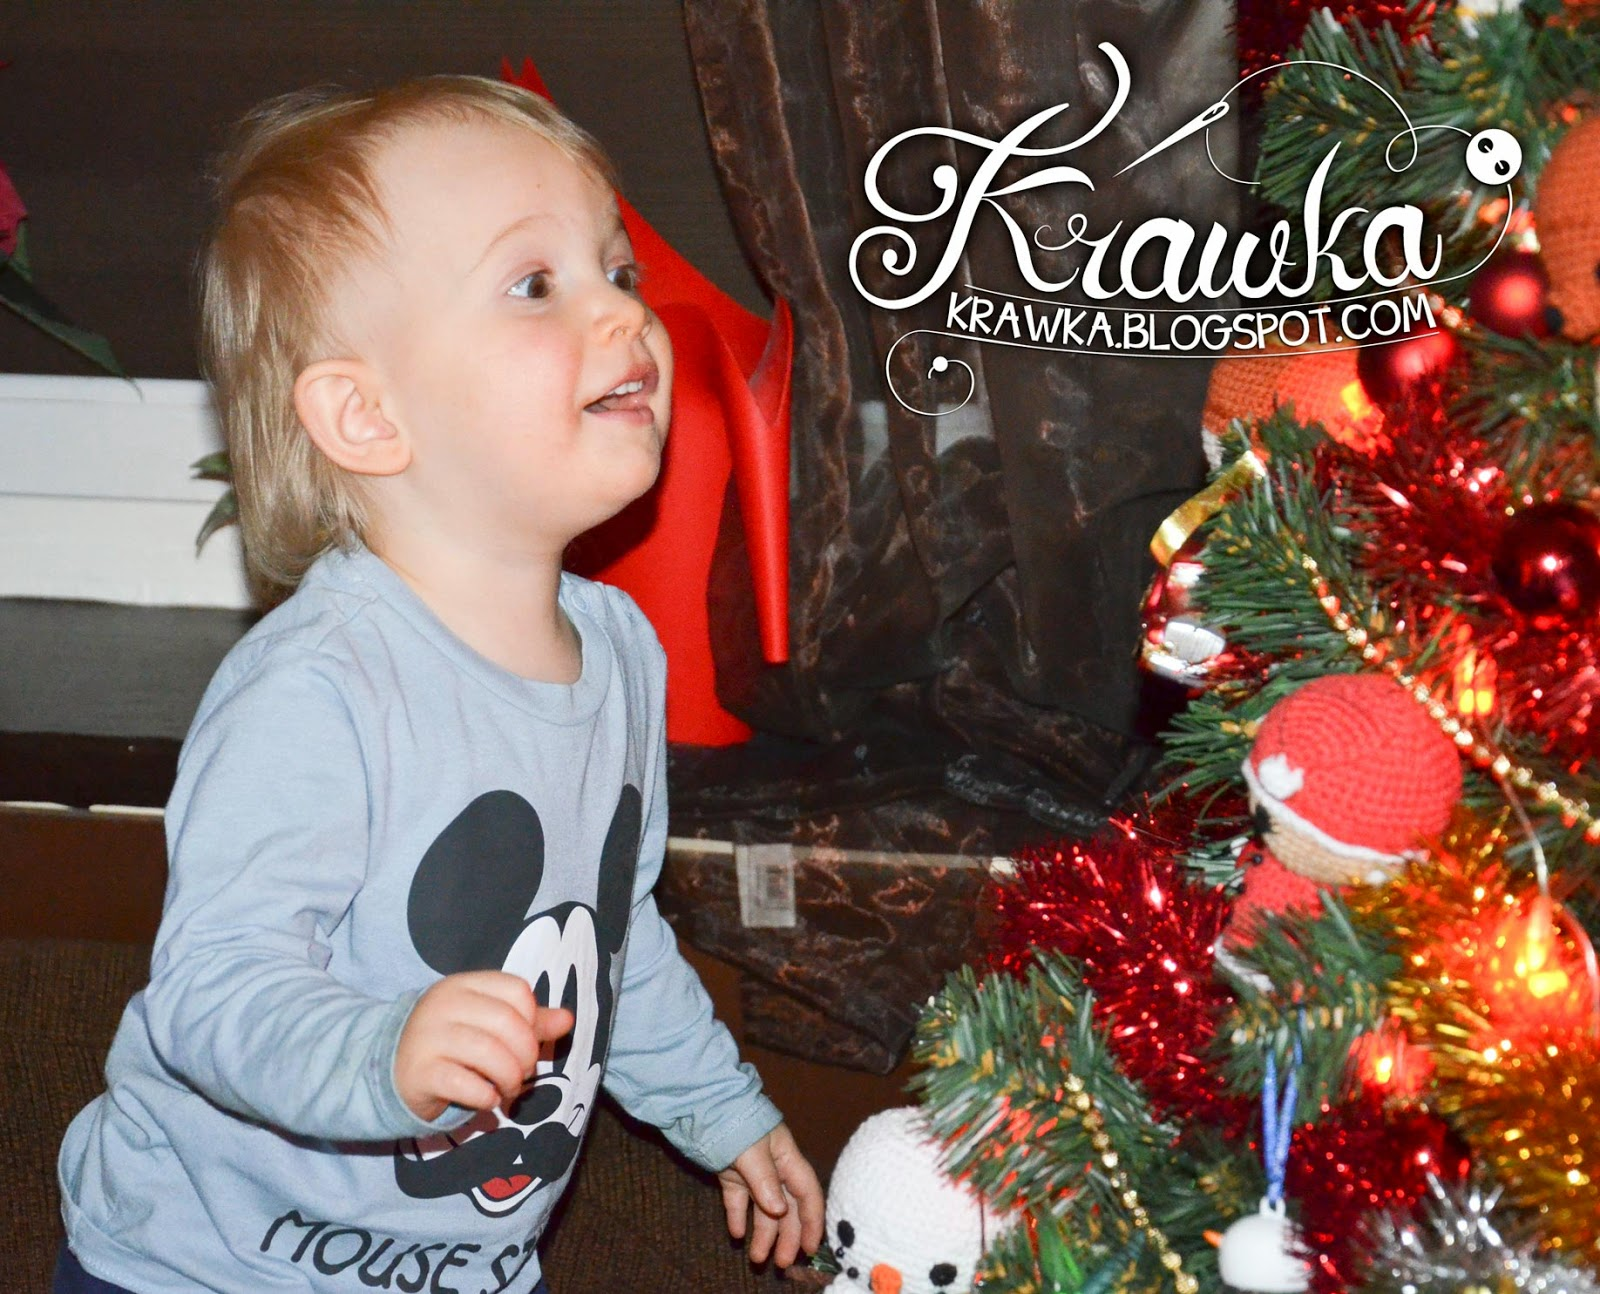 Krawka: The face of my son when we lit the lights on the tree :)